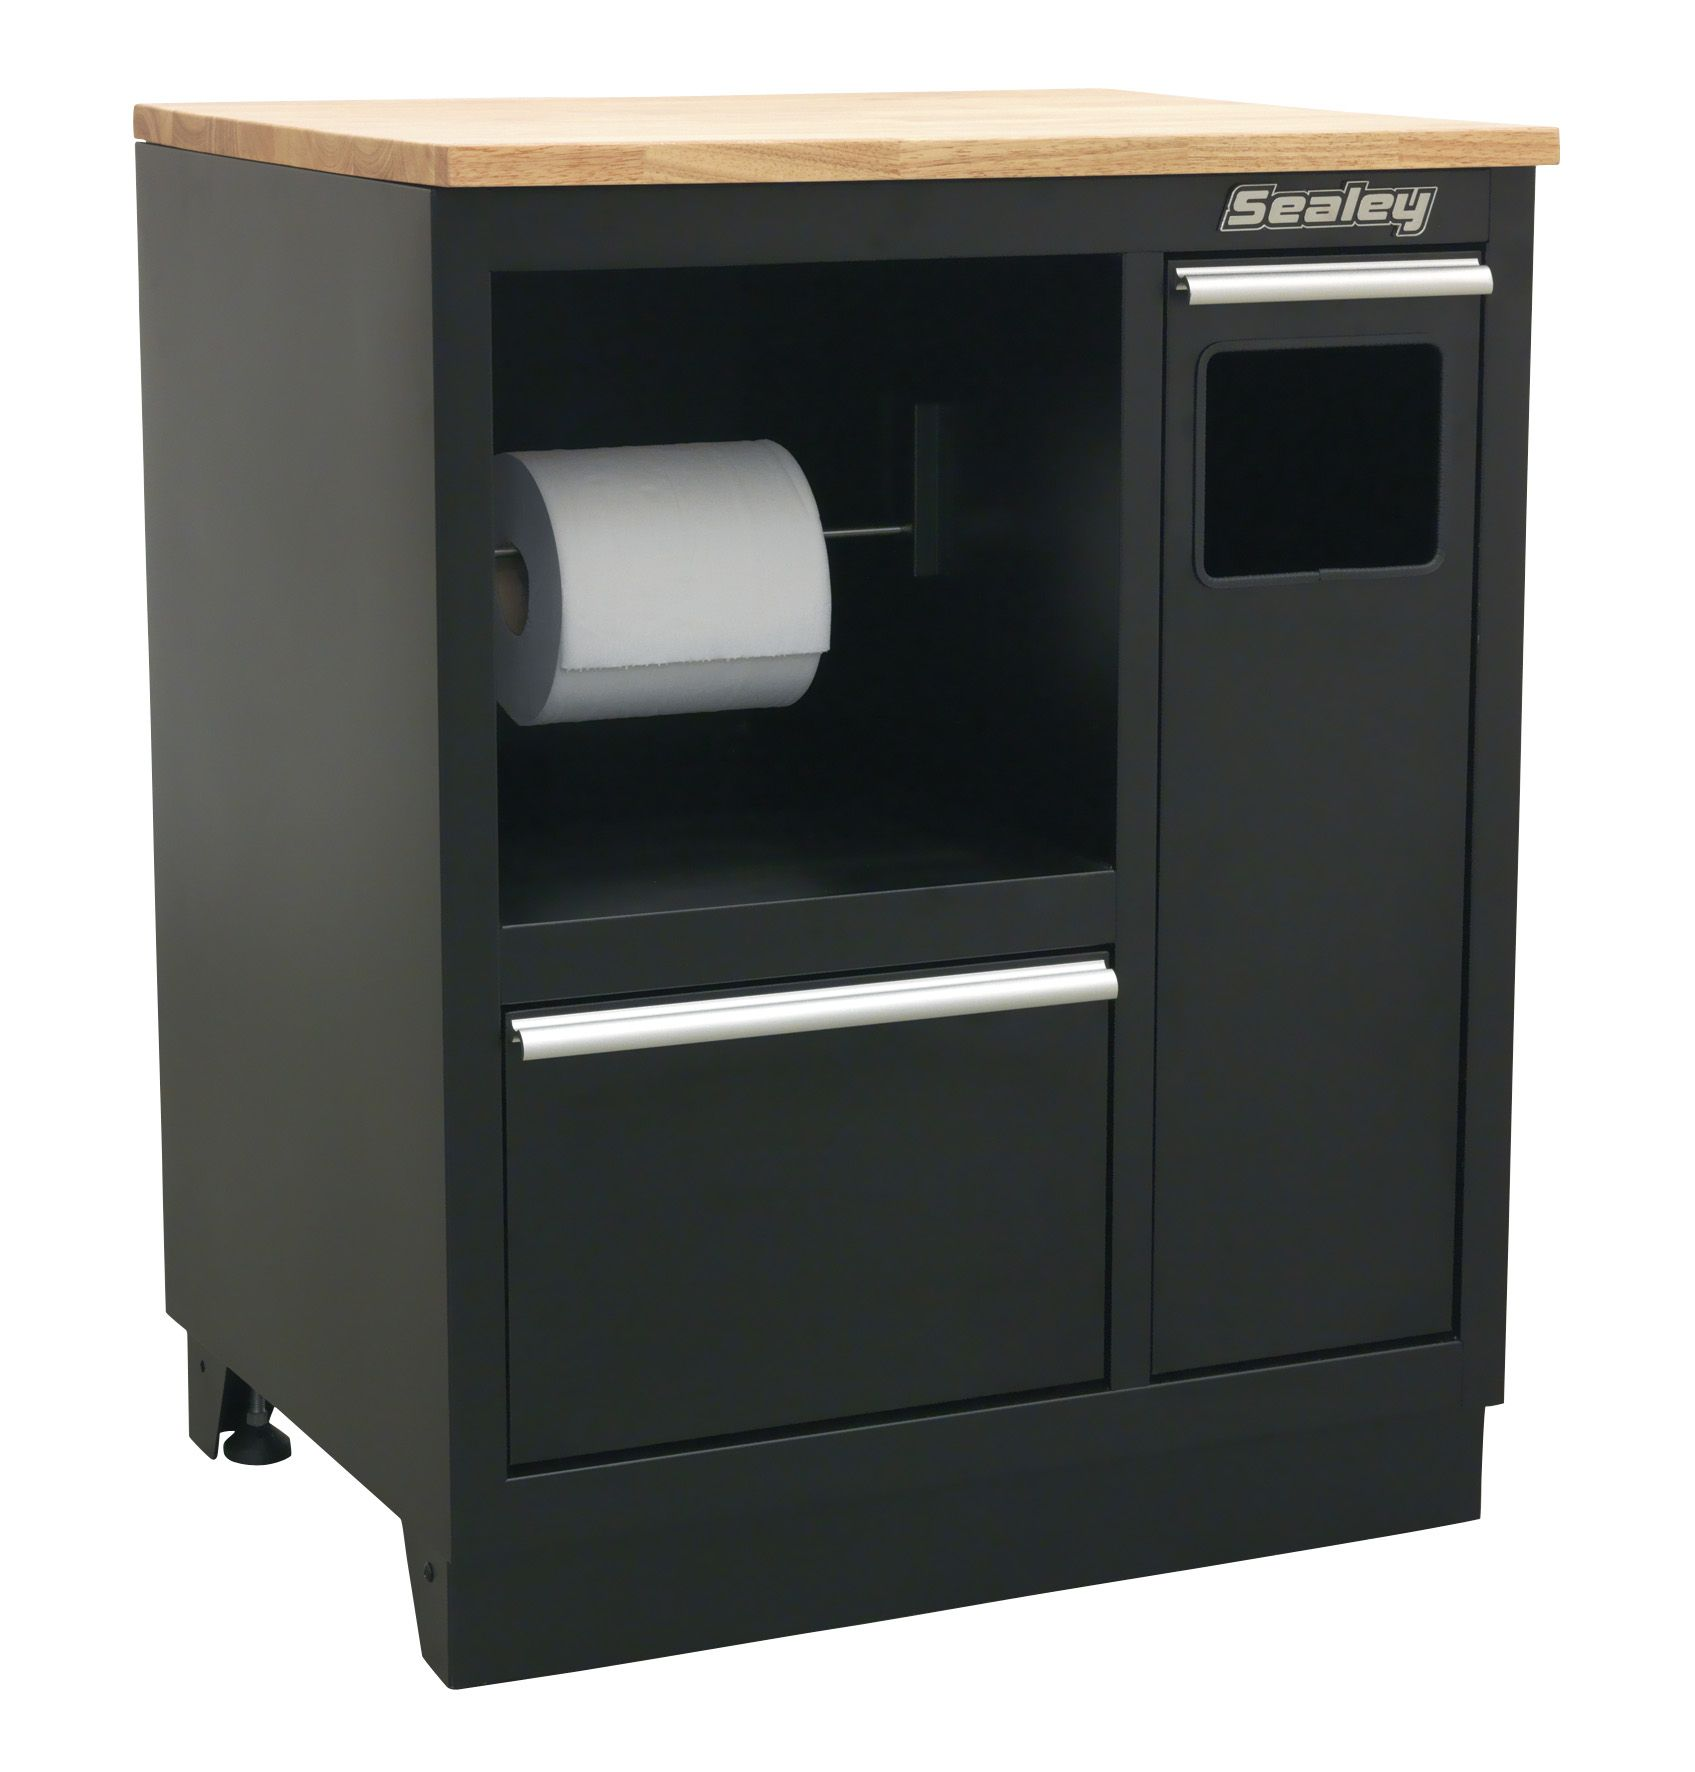 Sealey Premier Modular Floor Cabinet Multifunction 775mm Heavy-Duty